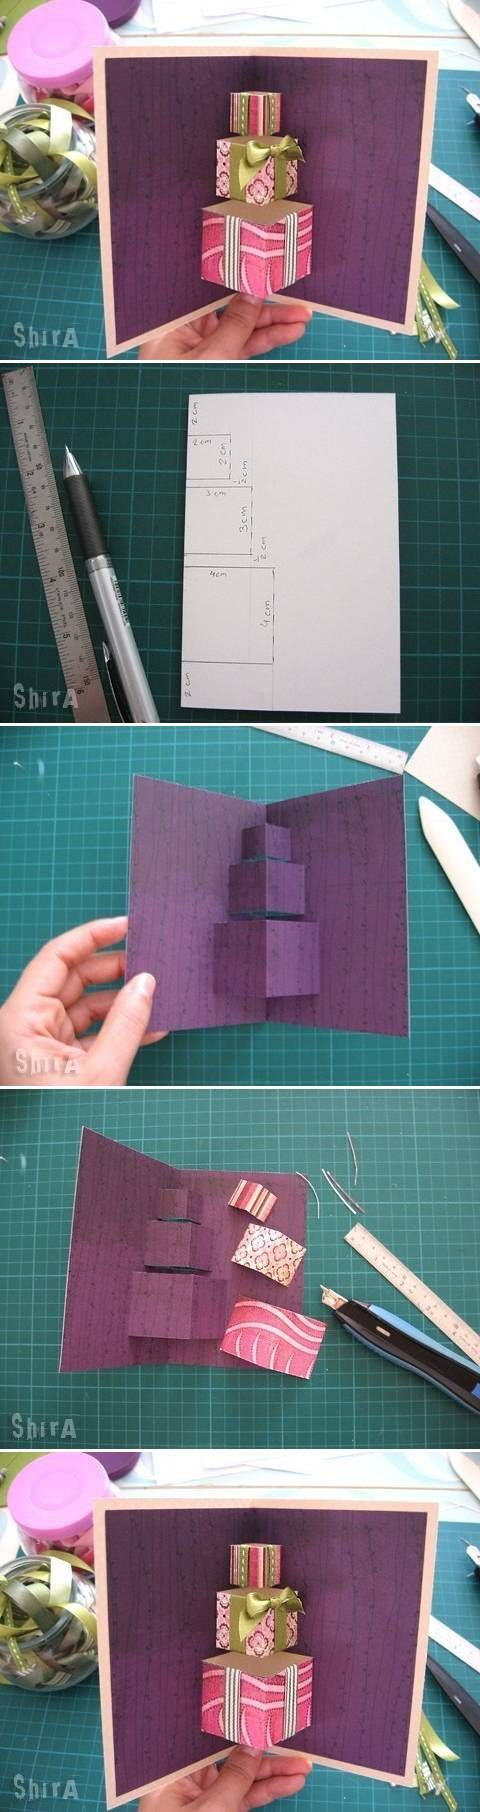 card making photo tutorial ... stacked present pop-up ... basic centerfold pop-up ... fun card with purple base ...